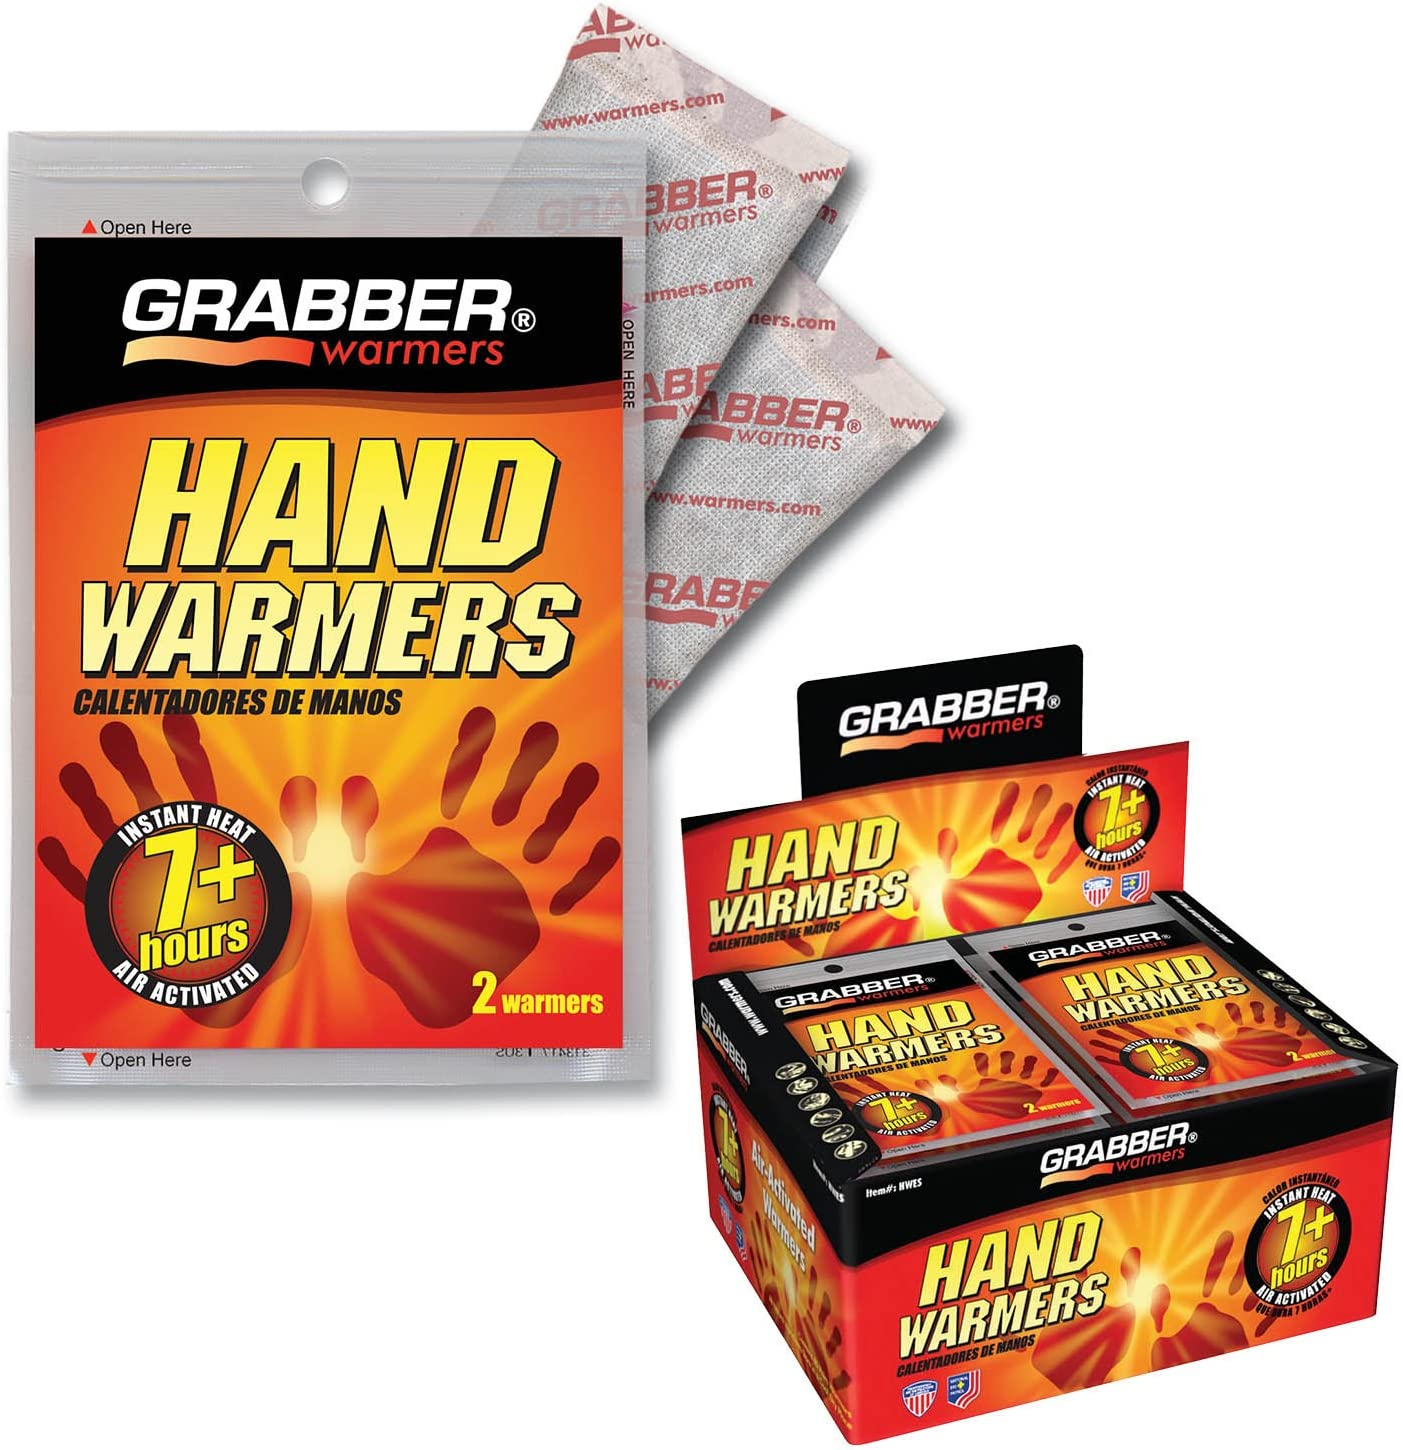 Box of 40 Pair Hour Grabber Hand Warmers 7